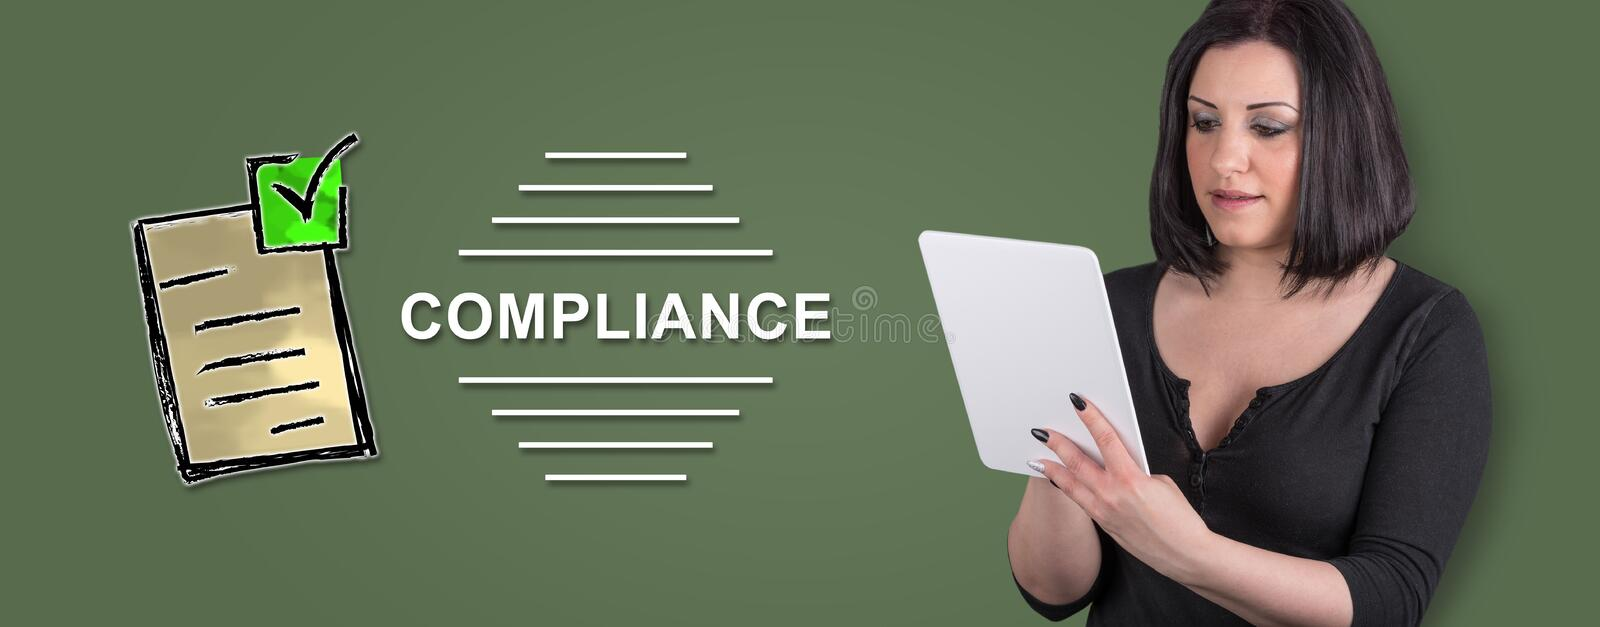 Concept of compliance stock photography